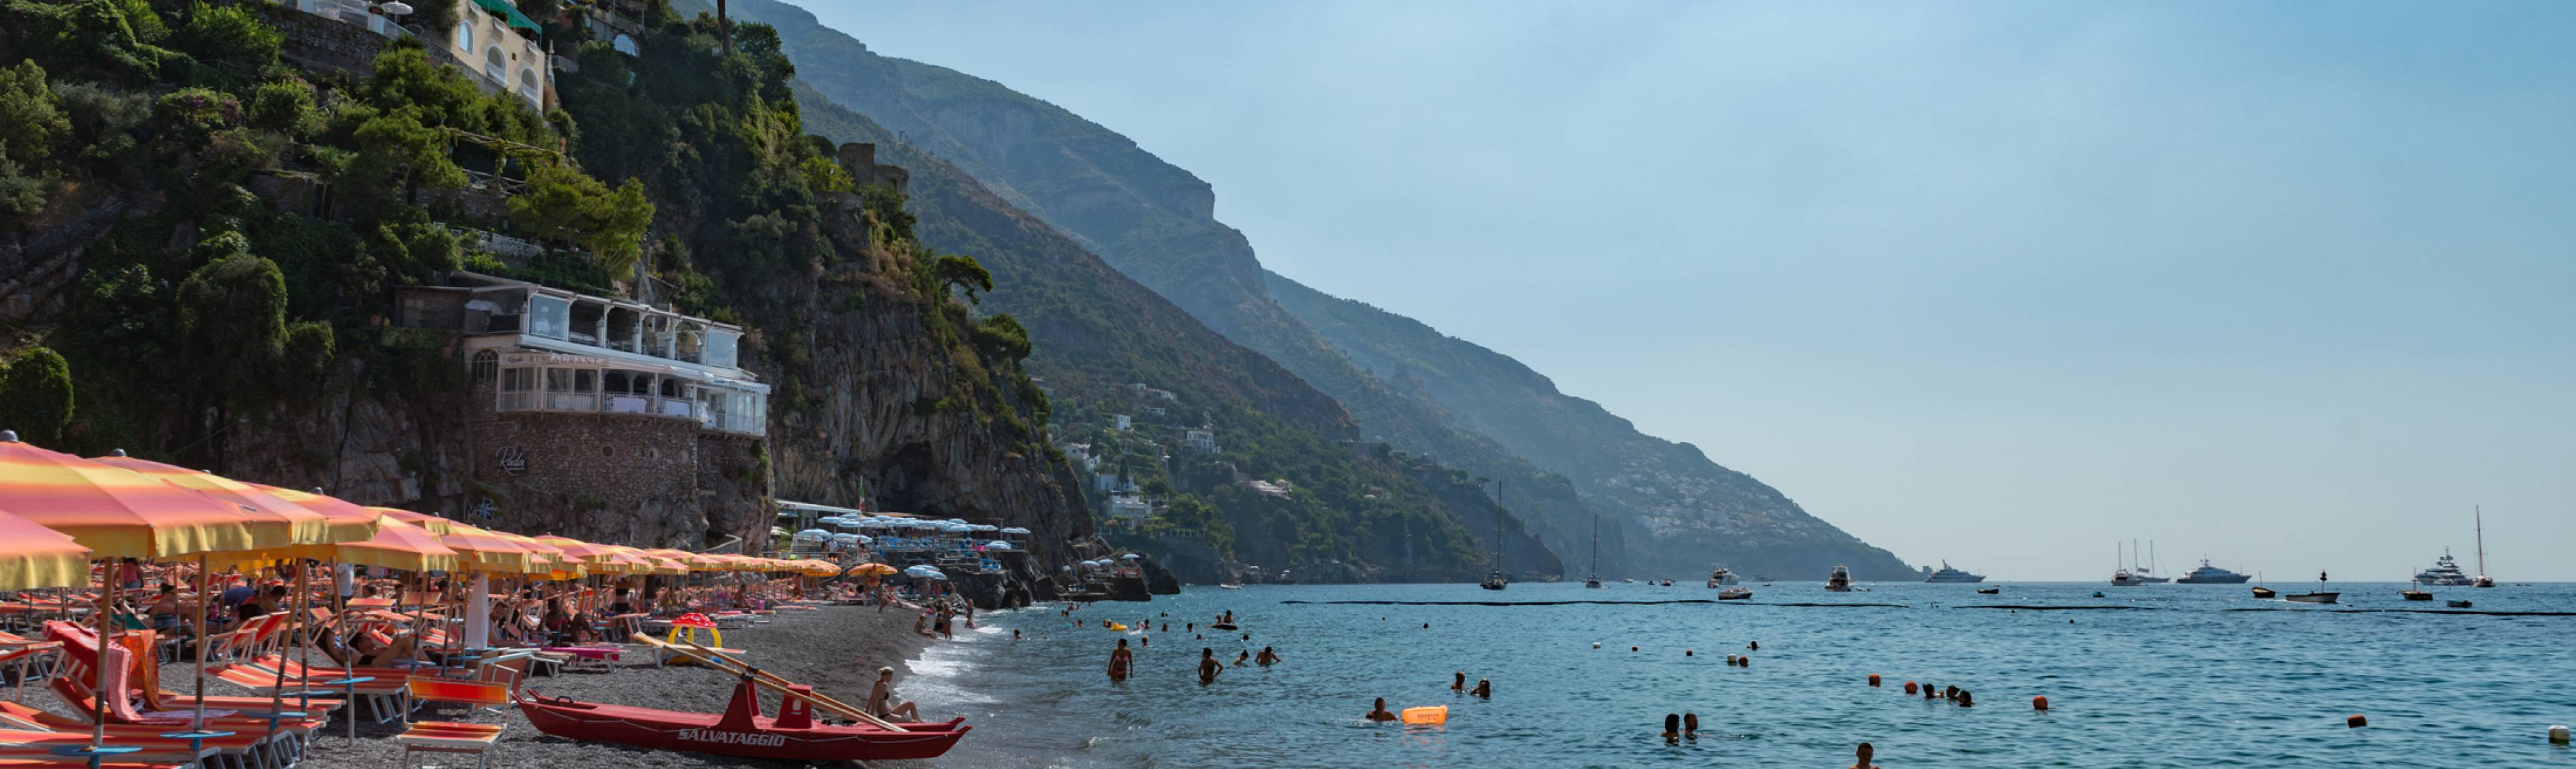 Panoramic view of people bathing in beaches of Amalfi Coast